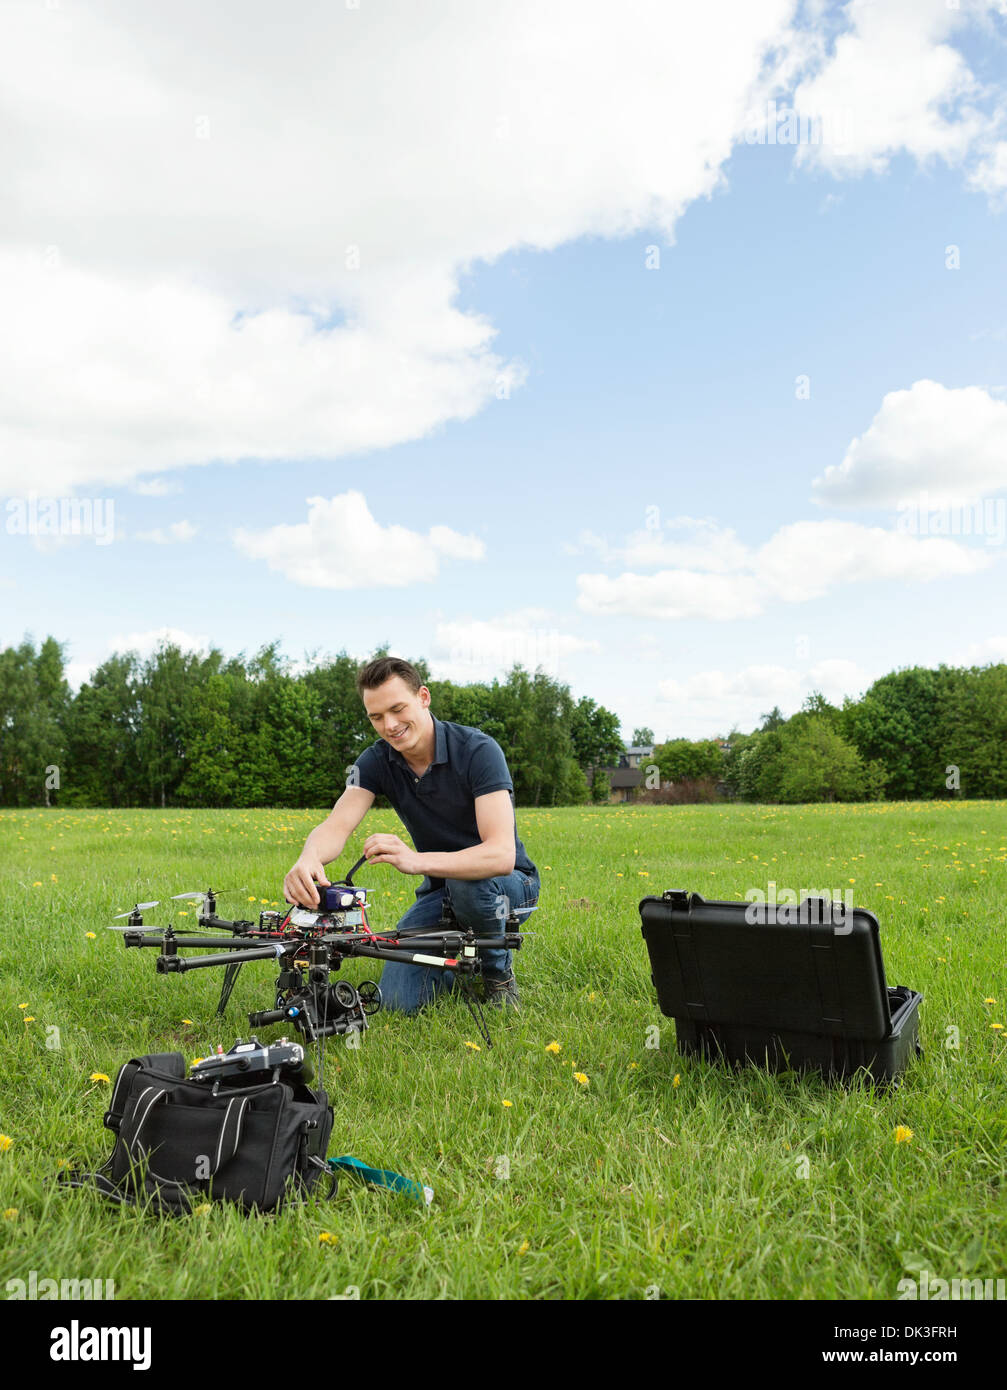 Technician Preparing Multirotor Helicopter - Stock Image